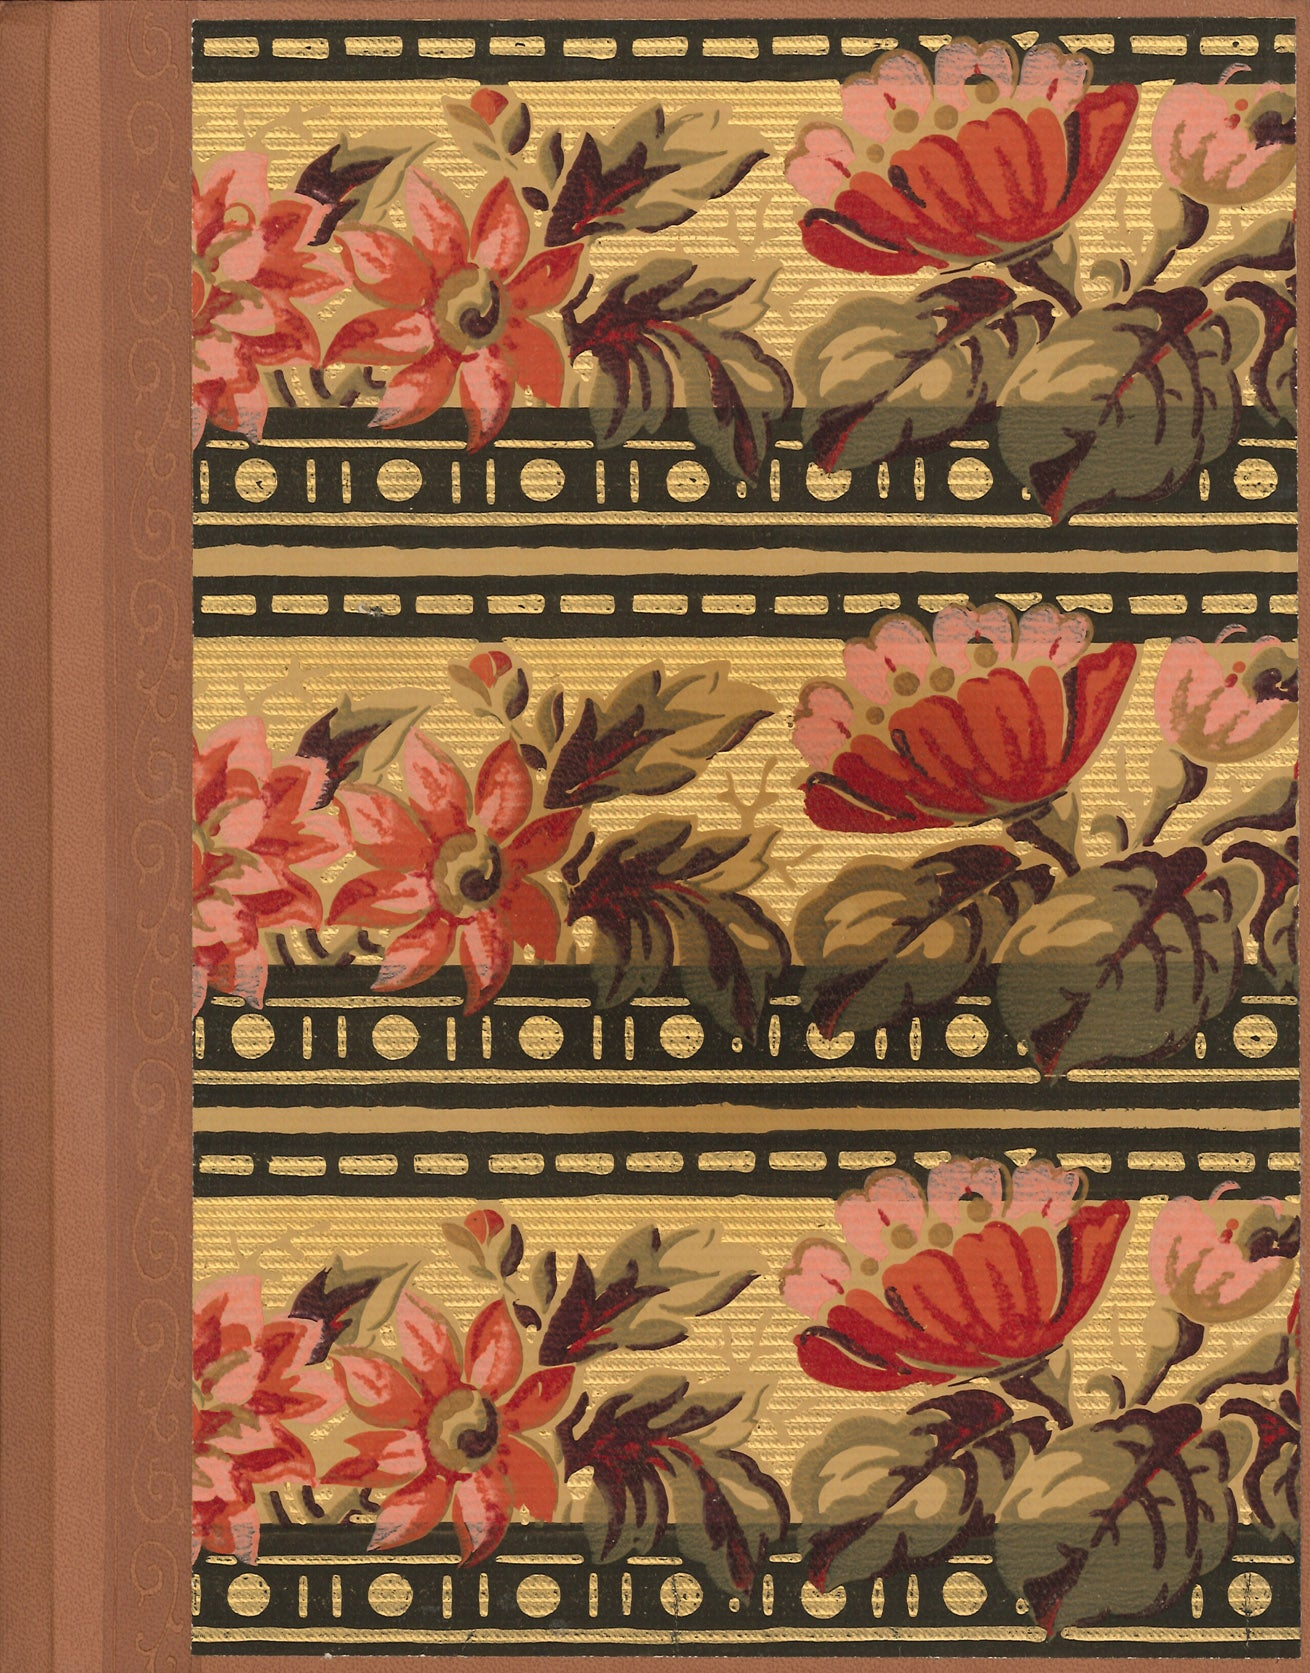 "Floral Border Antique Wallpaper Journal - 8.5"" x 11"""